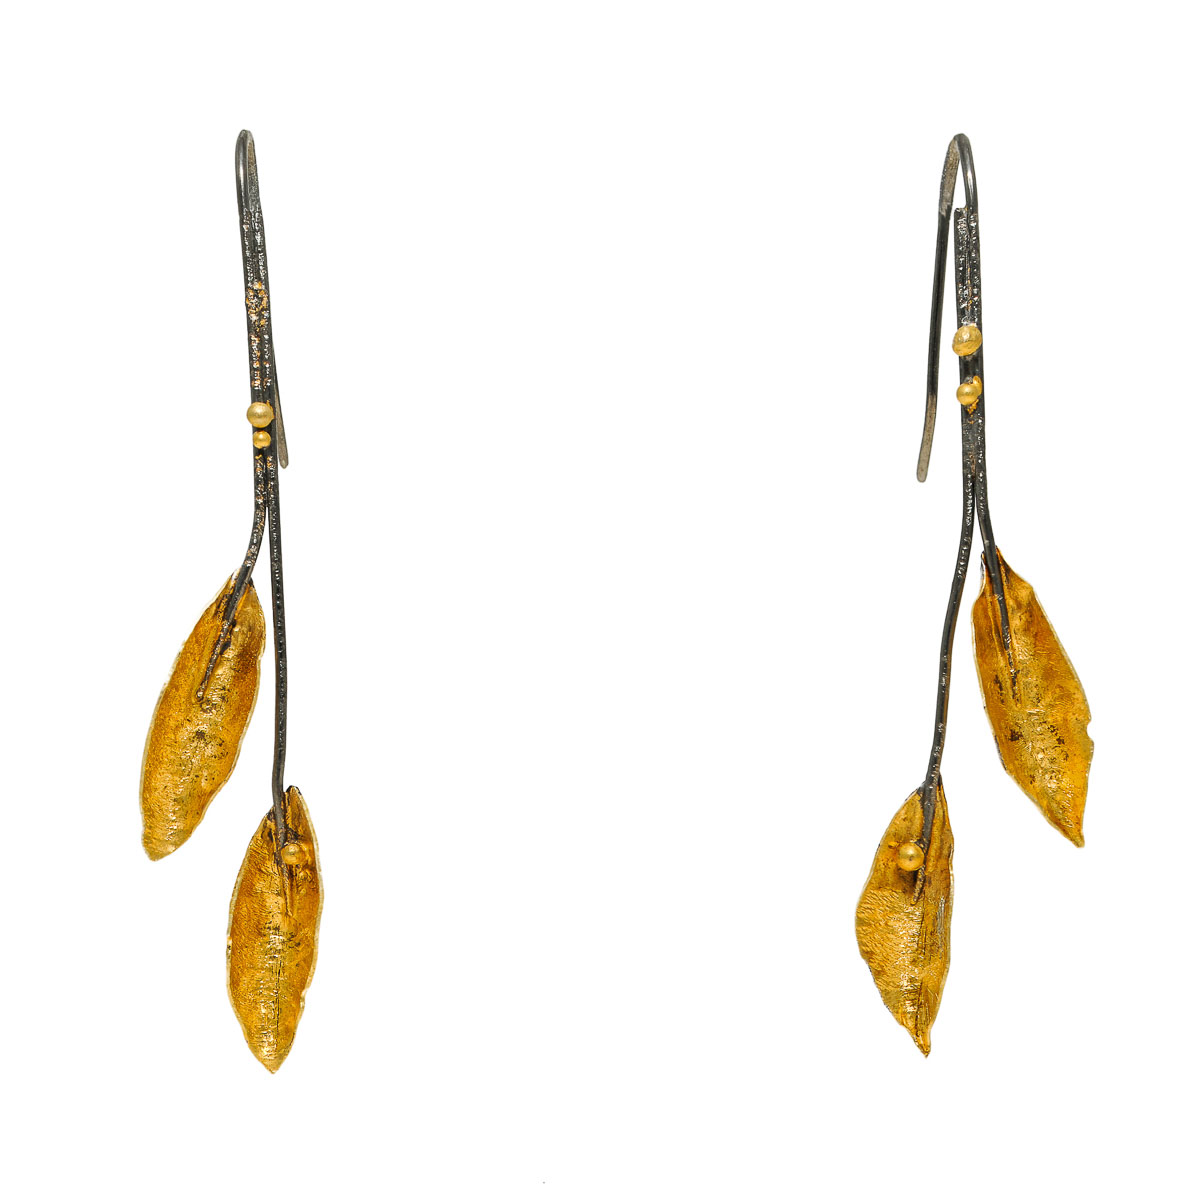 """""""Leaves"""" project is part of the """"Imaginary Nature"""" jewelry collection. They are available in silver and a variety of designs and sizes from tiny to large."""